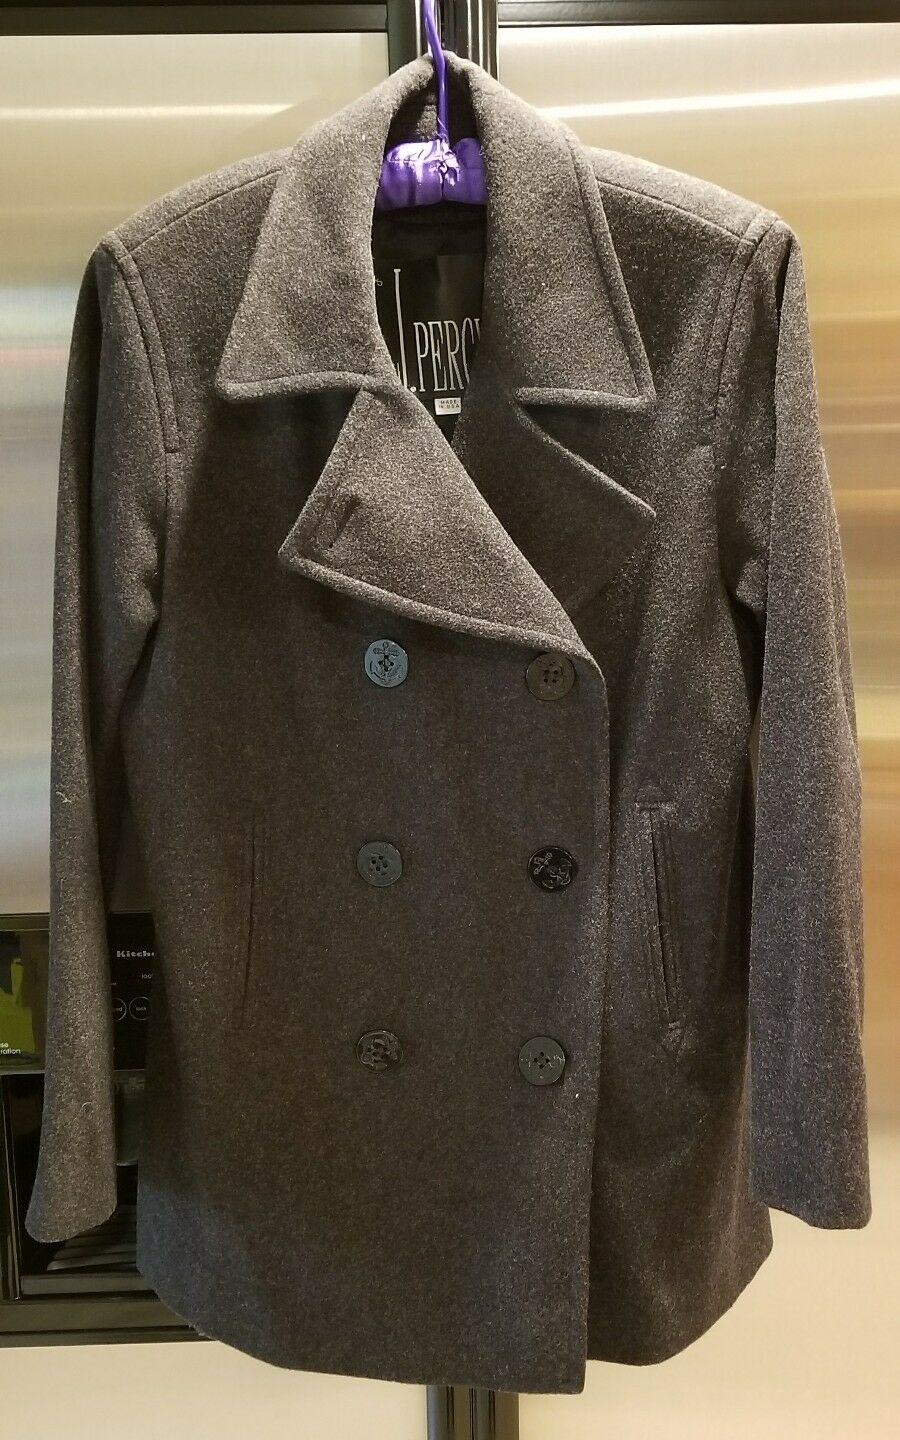 J.PERCY Women's Merino Wool 100% Double Breasted Anchor Buttons Size 6 PEACOAT